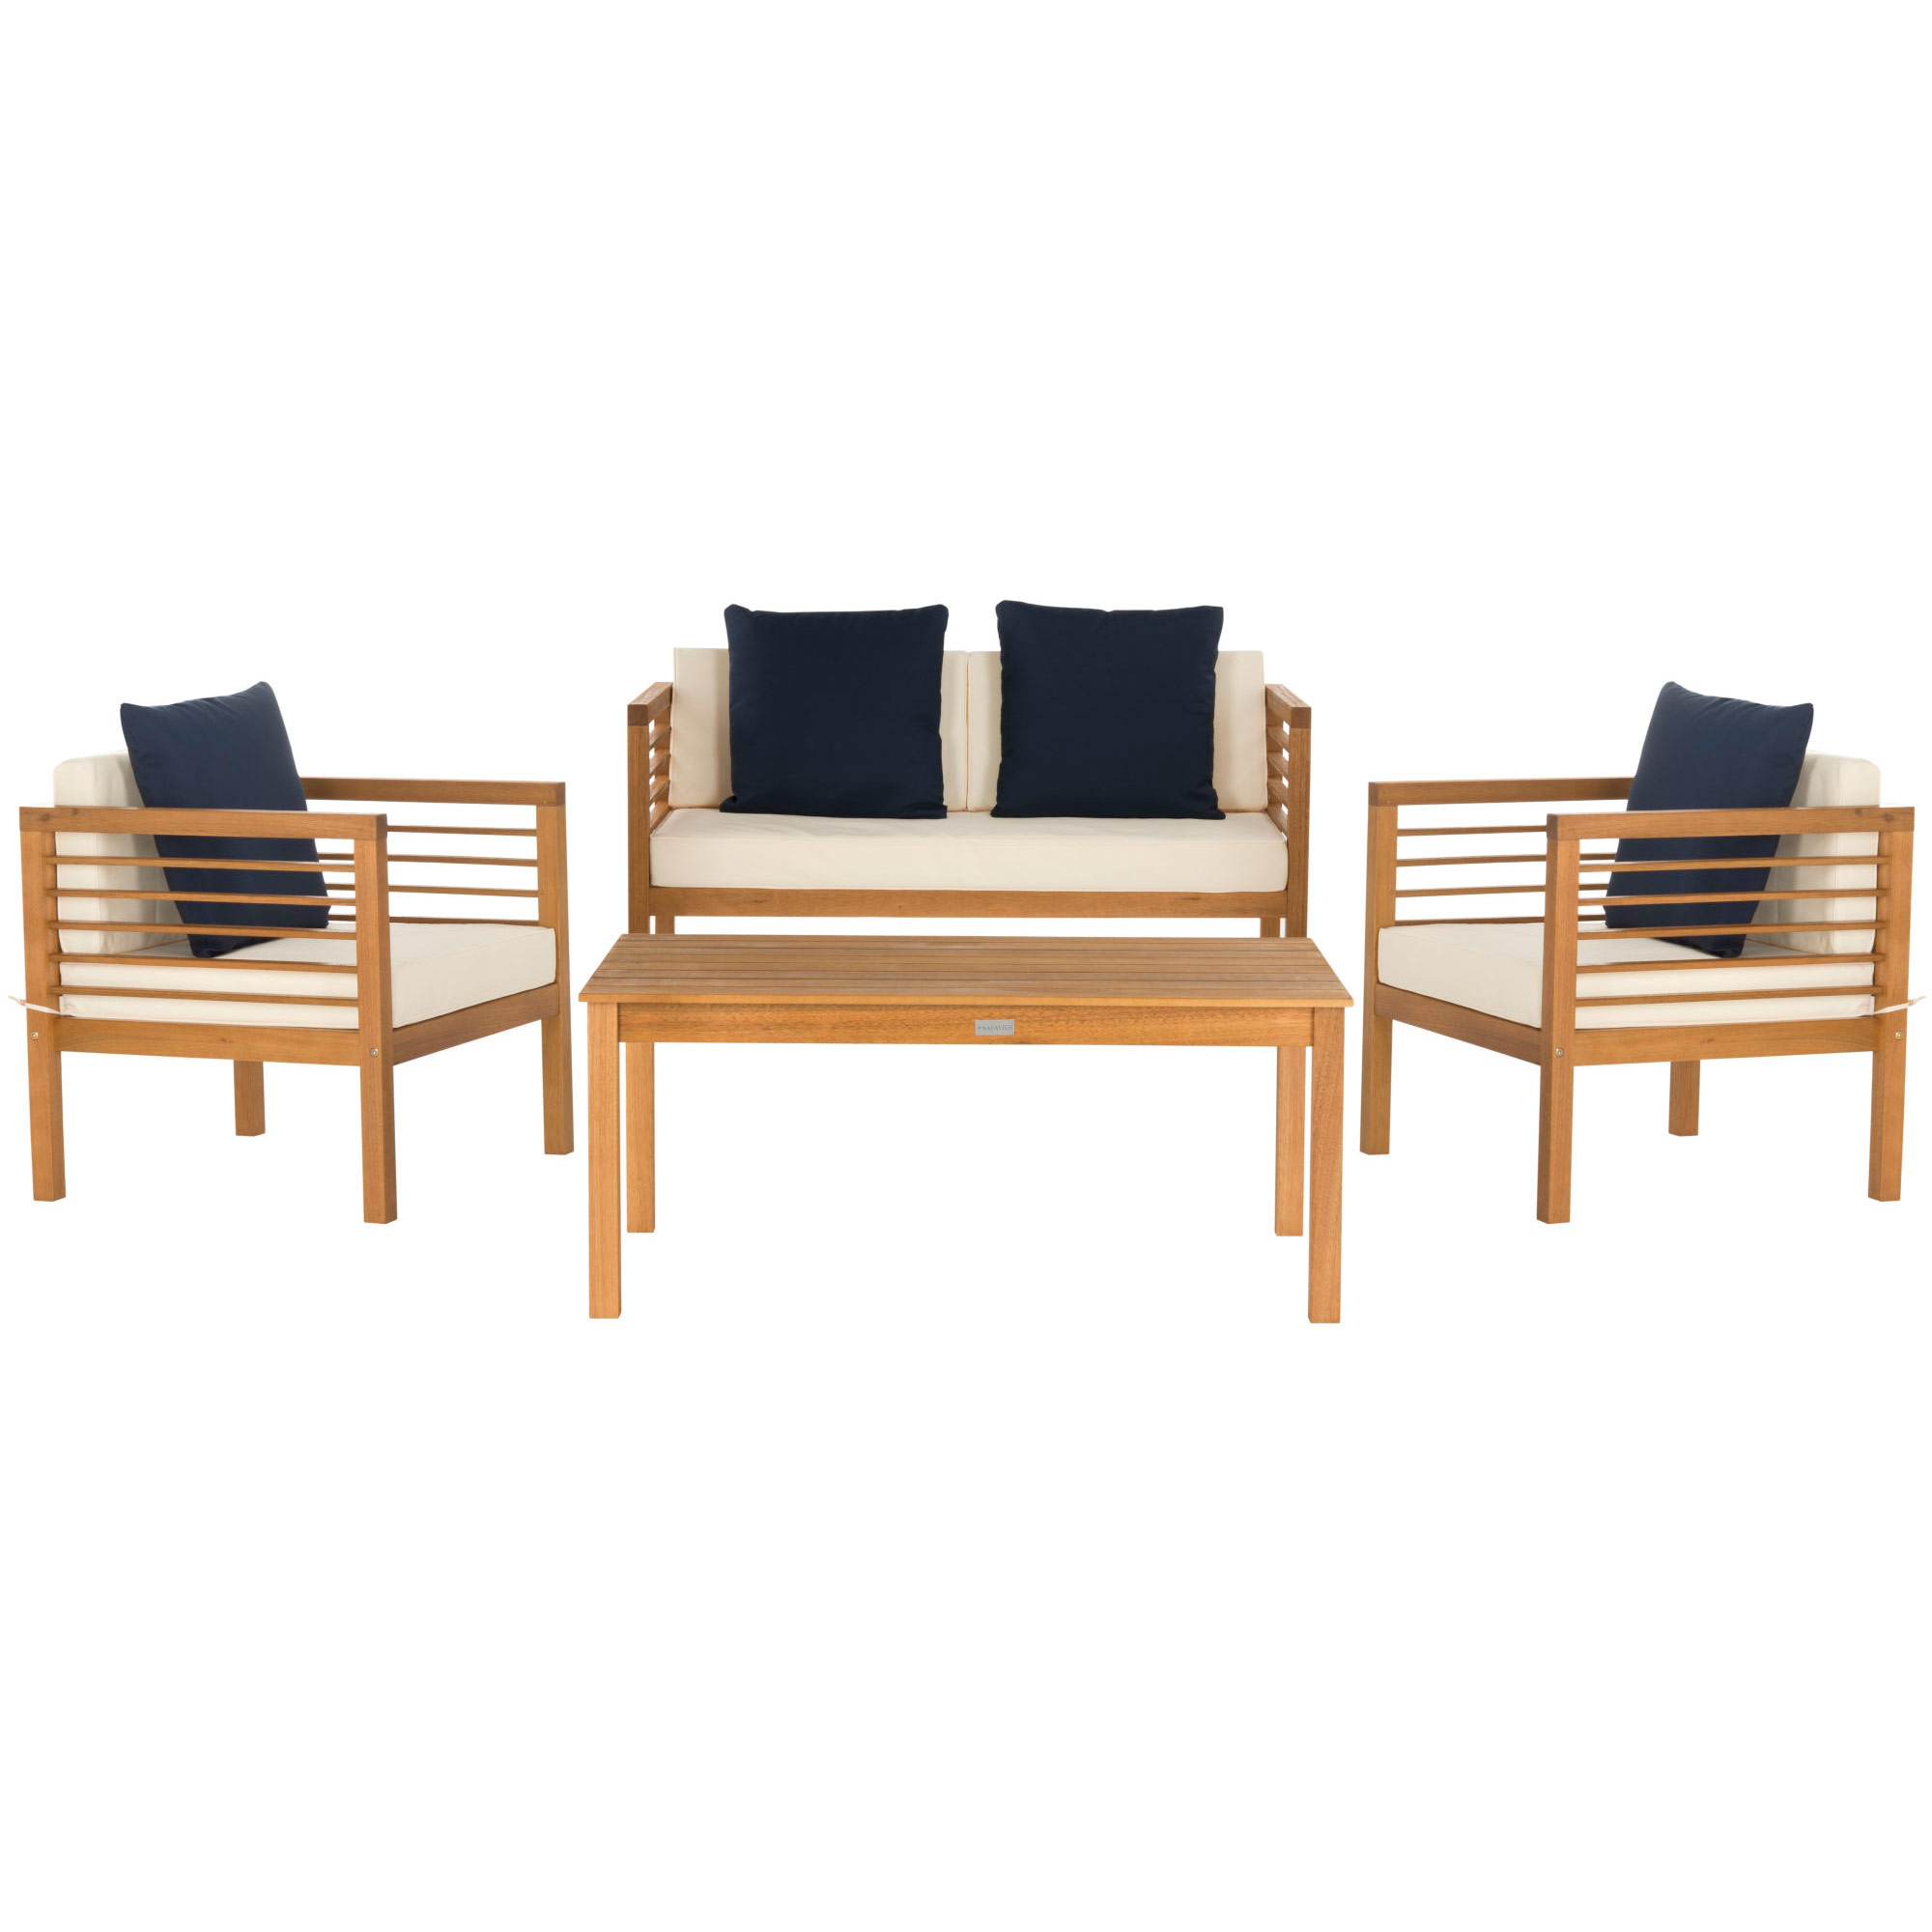 Alda 4 Pc Outdoor Set With Accent Pillows on Safavieh Alda 4Pc Outdoor Set id=34477